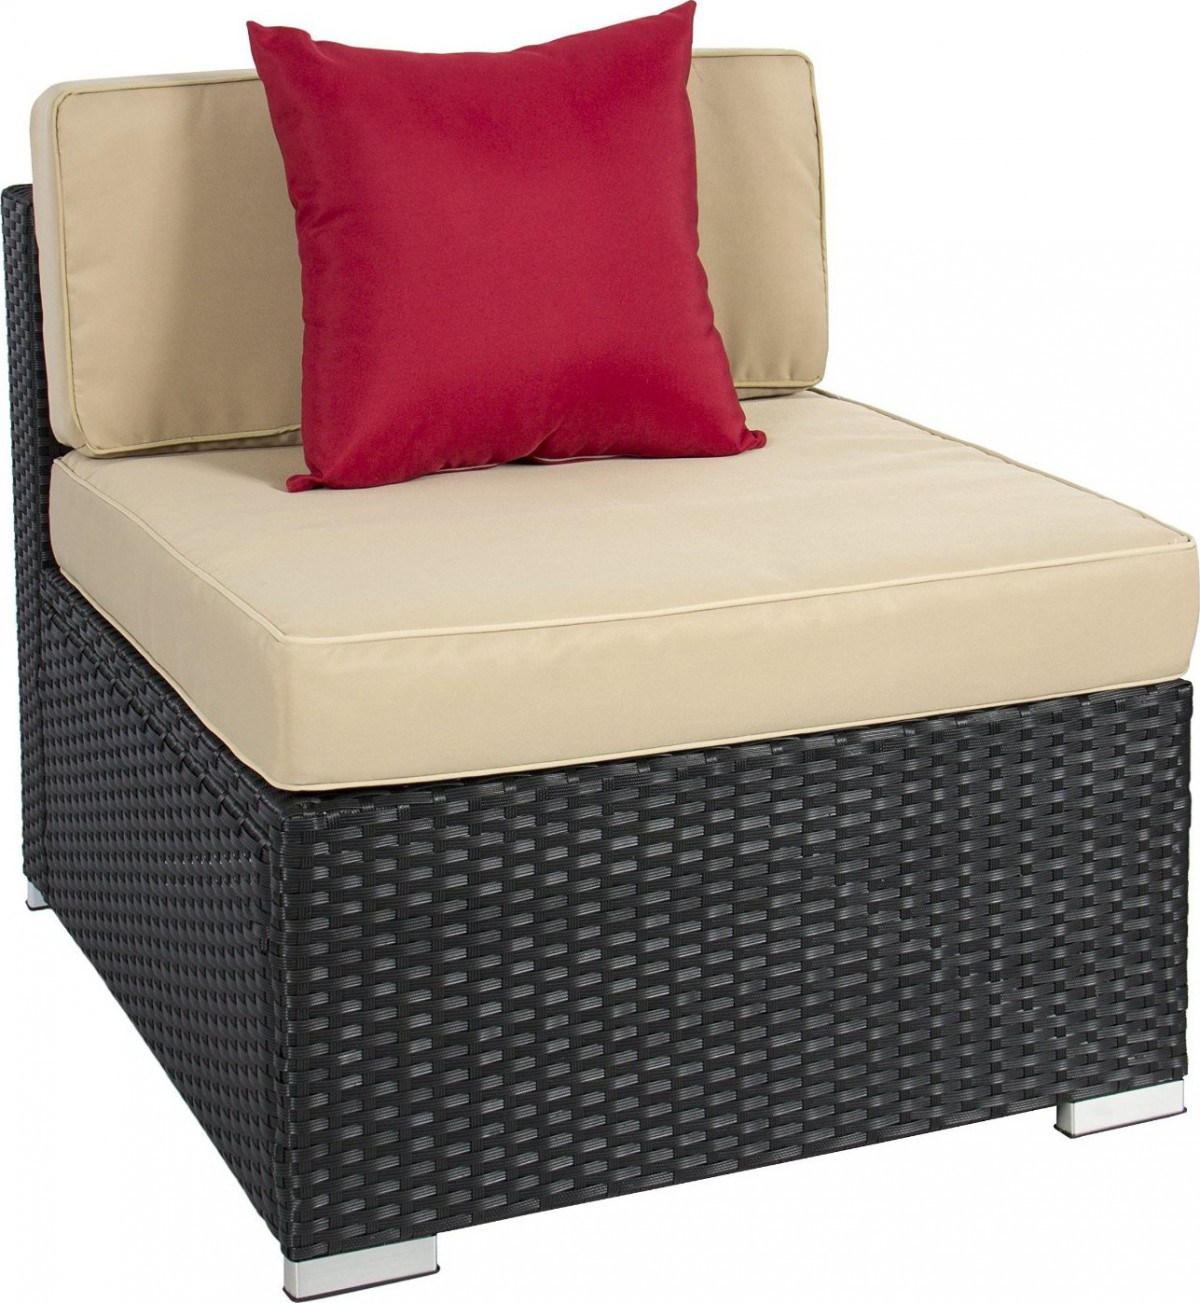 Best choice products pc wicker outdoor sectional sofa set